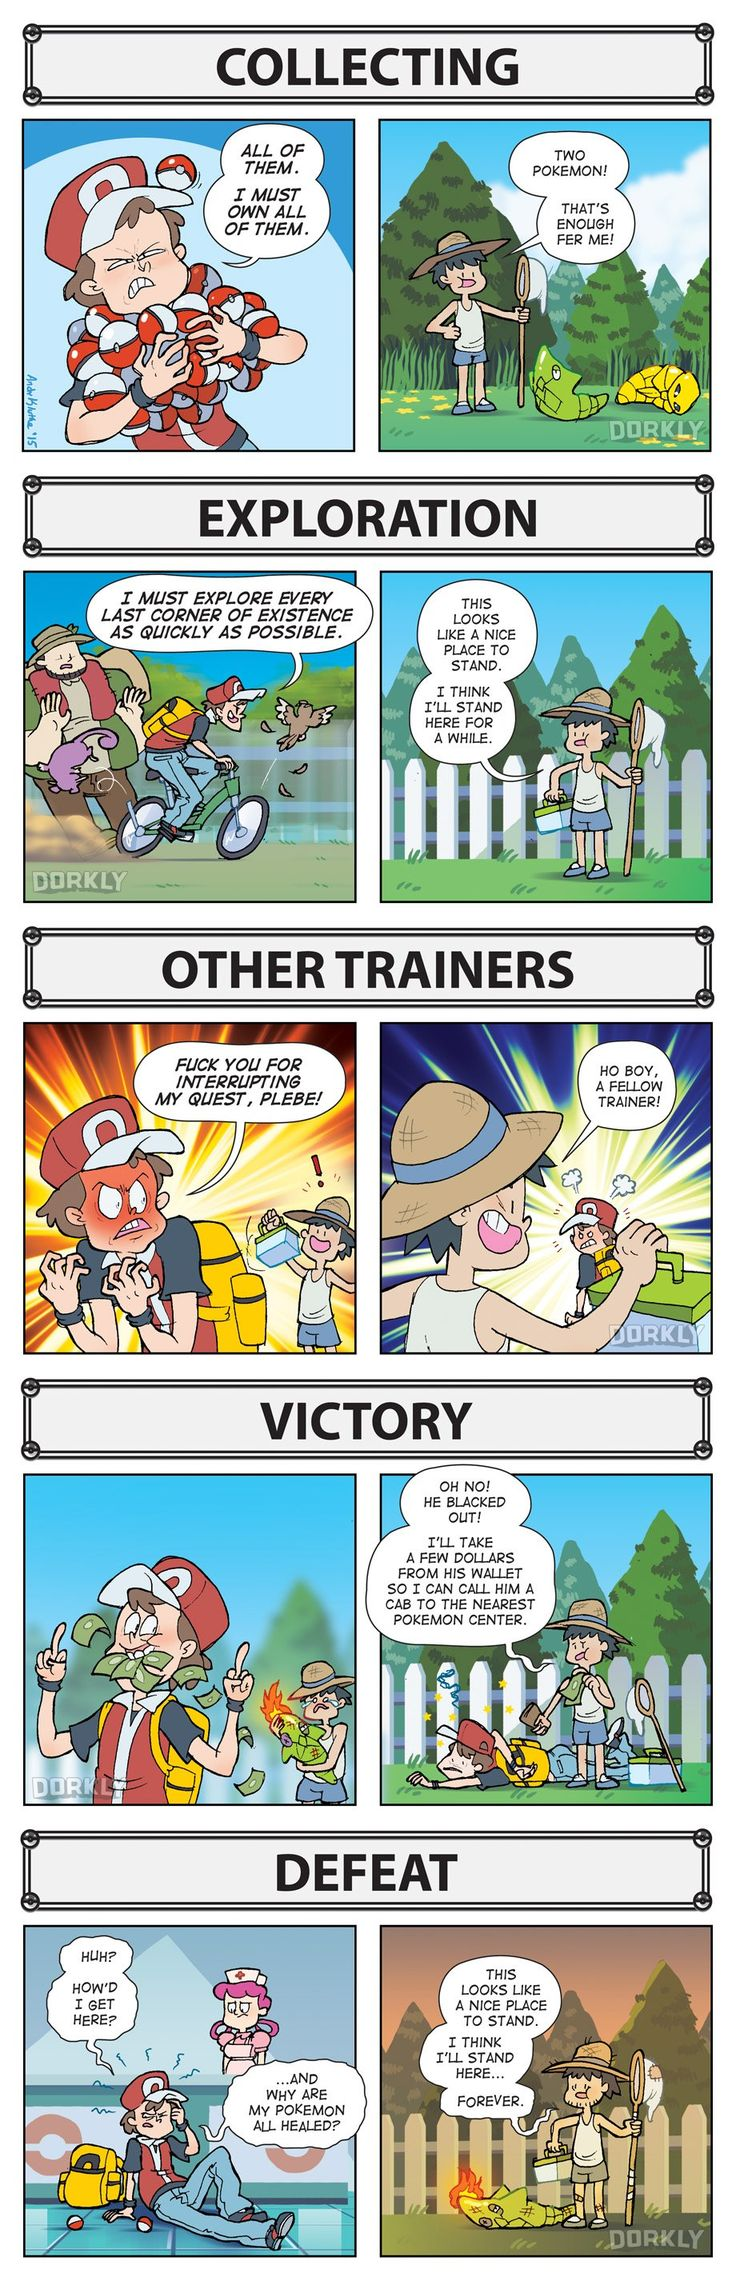 How YOU Play Pokémon vs. How NPCs Play Pokémon Video Games / Nintendo / Pokemon Dorkly list / Good Guy Pokémon NPC